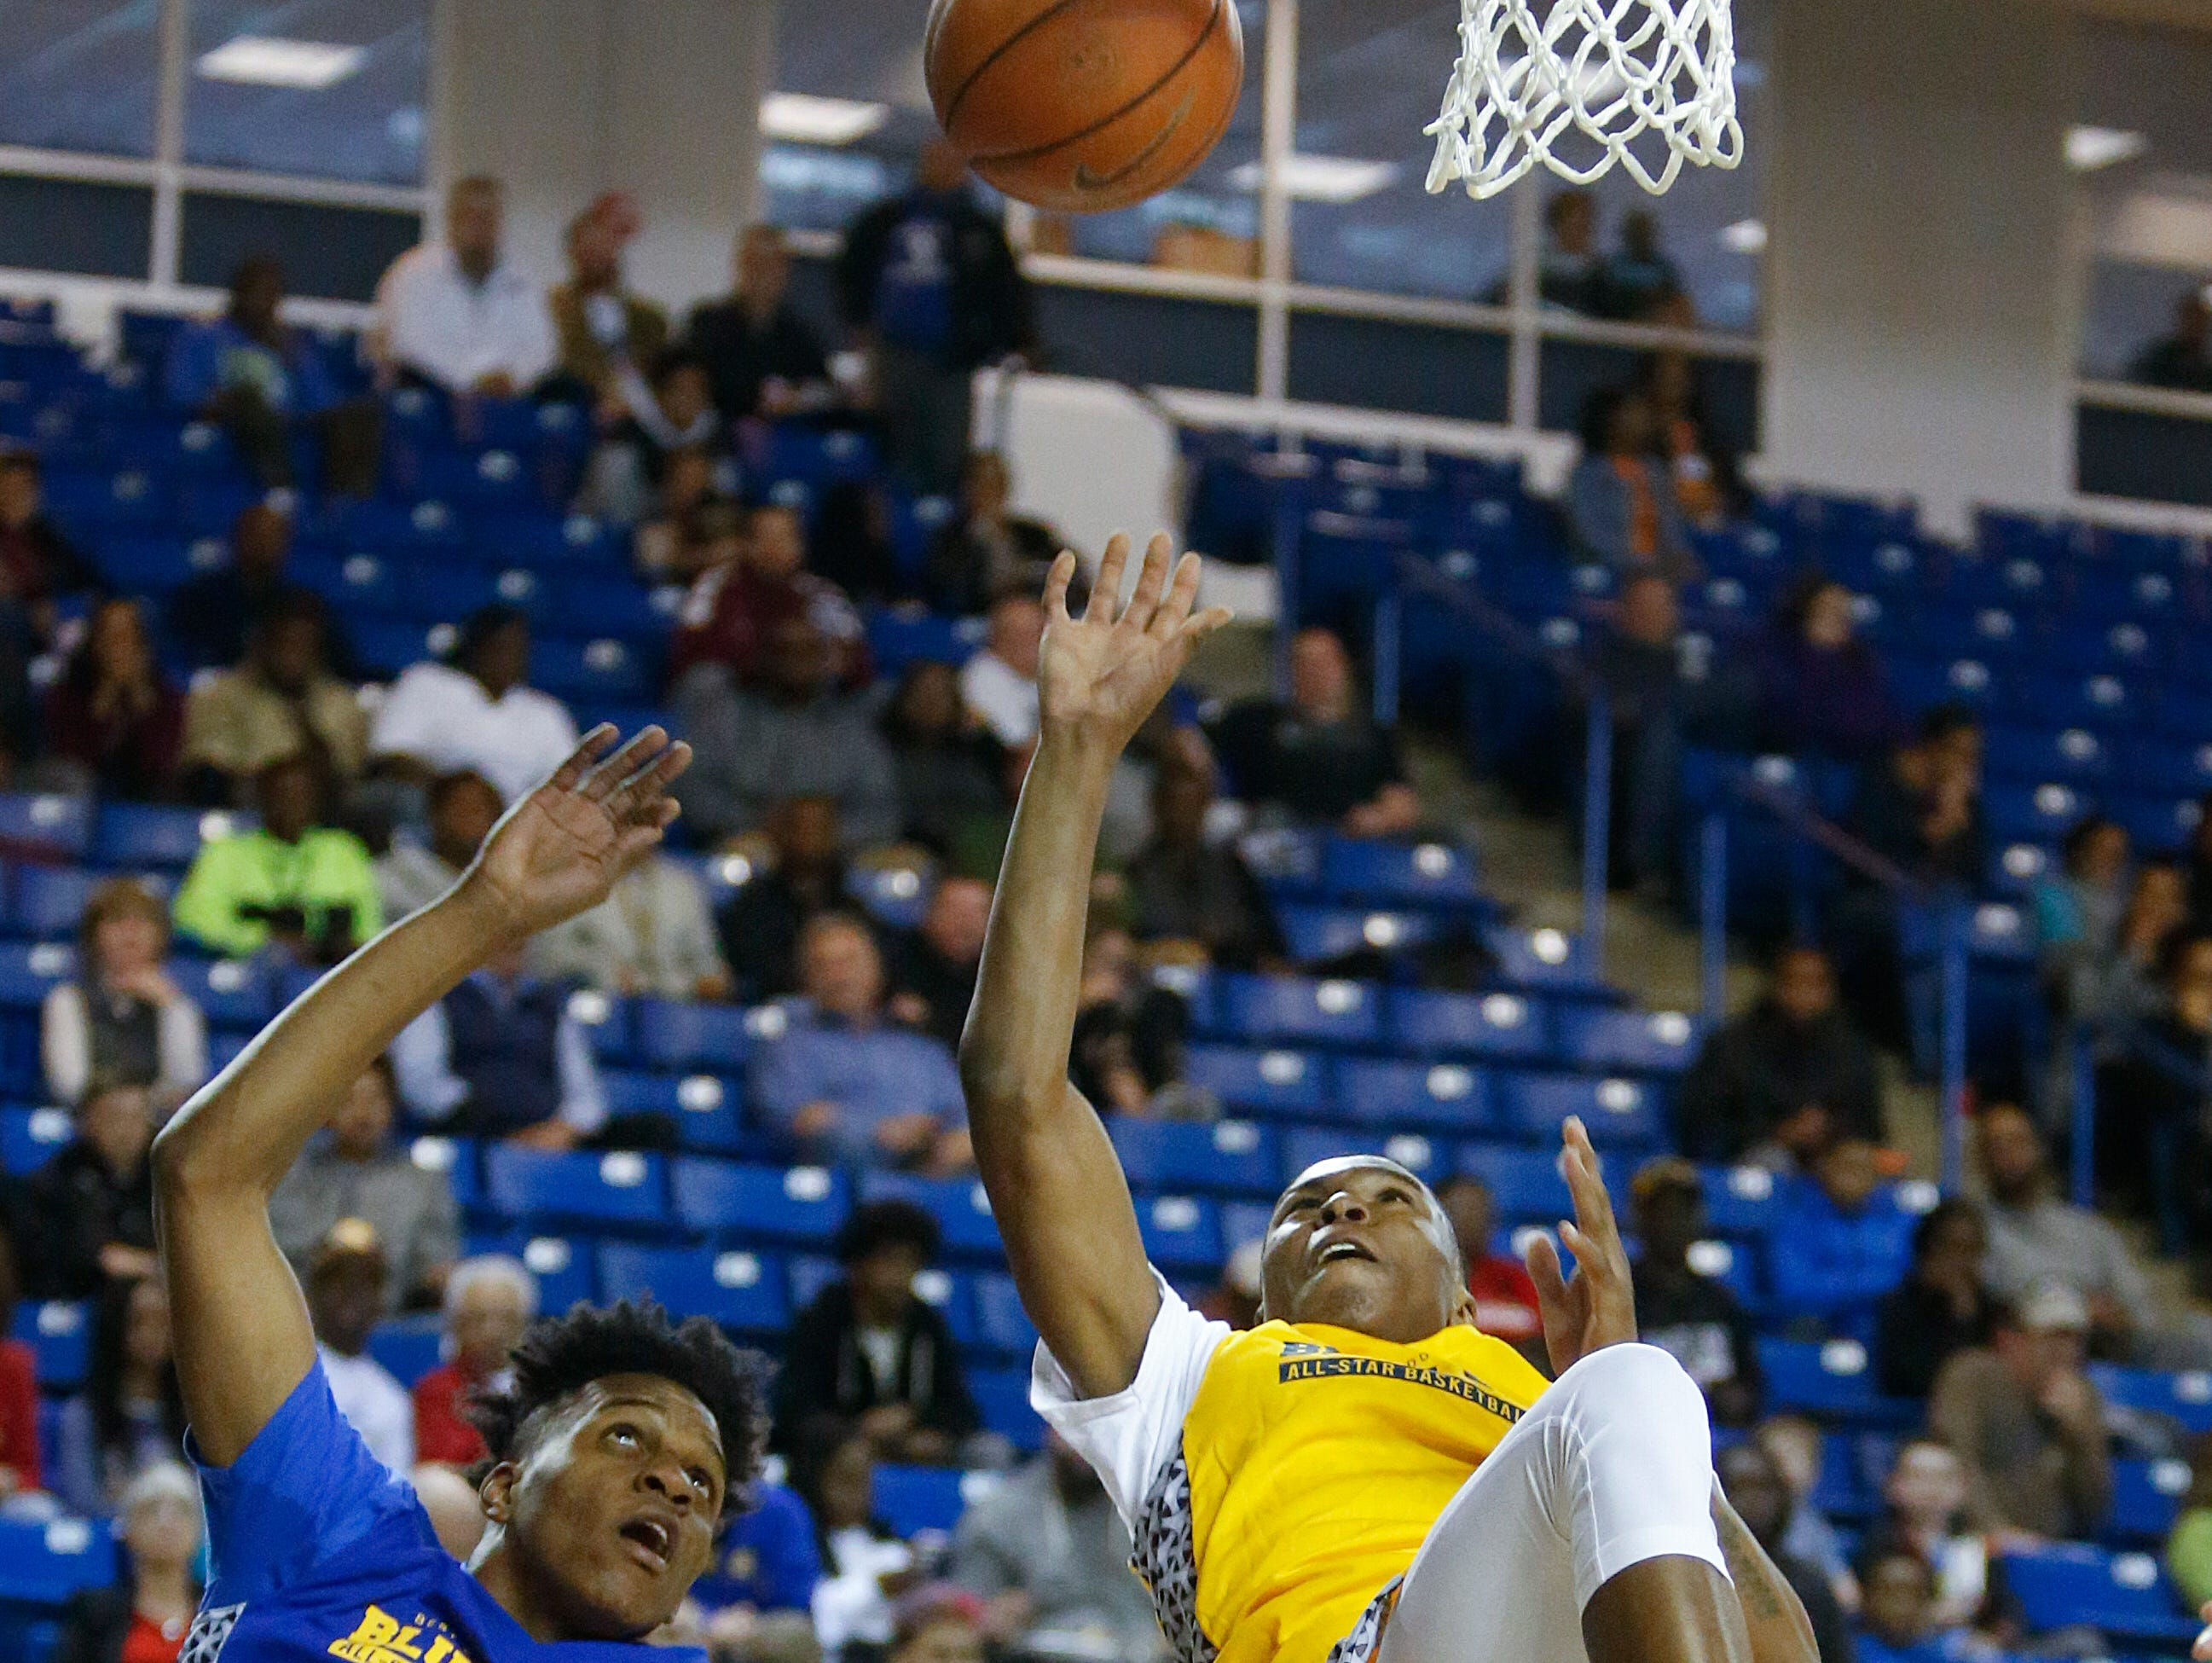 Blue's Jordan Perkins of Wilmington Friends (left) fouls Gold's Brion Murray of Milford in the first half of the Blue-Gold All-Star Basketball game at the Bob Carpenter Center Saturday.